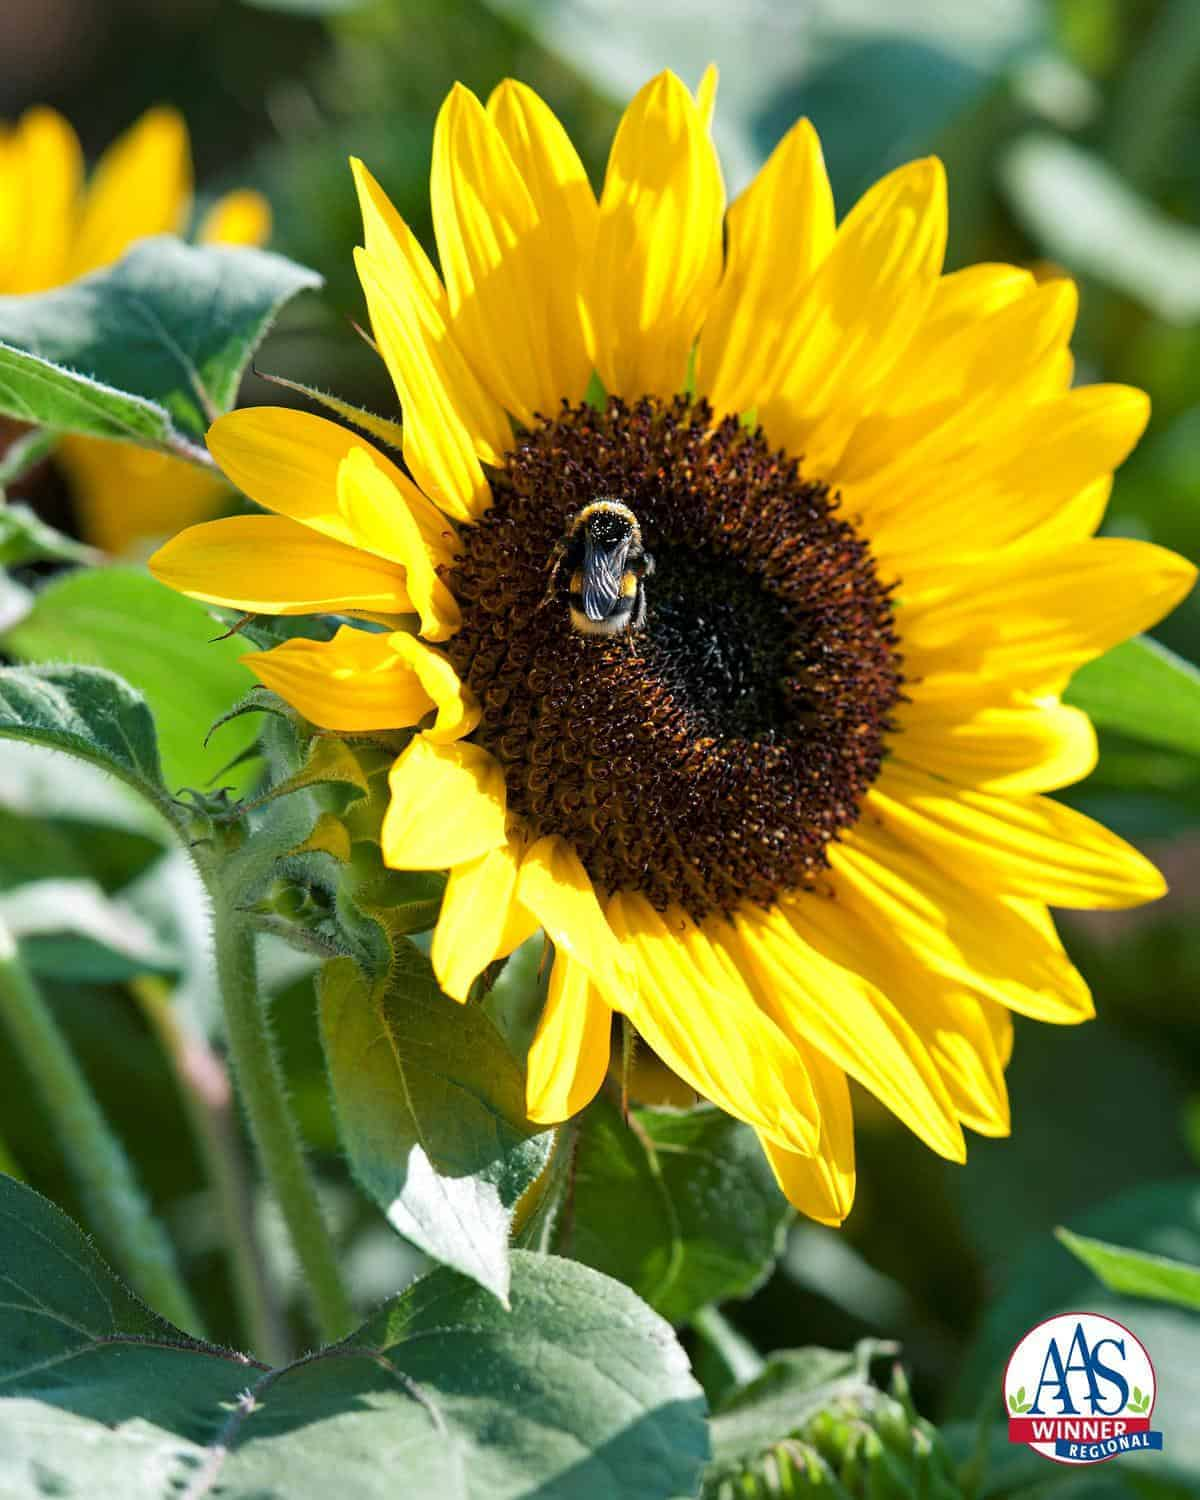 Indoors Garden Sunflower Suntastic Yellow With Black Center F1 All